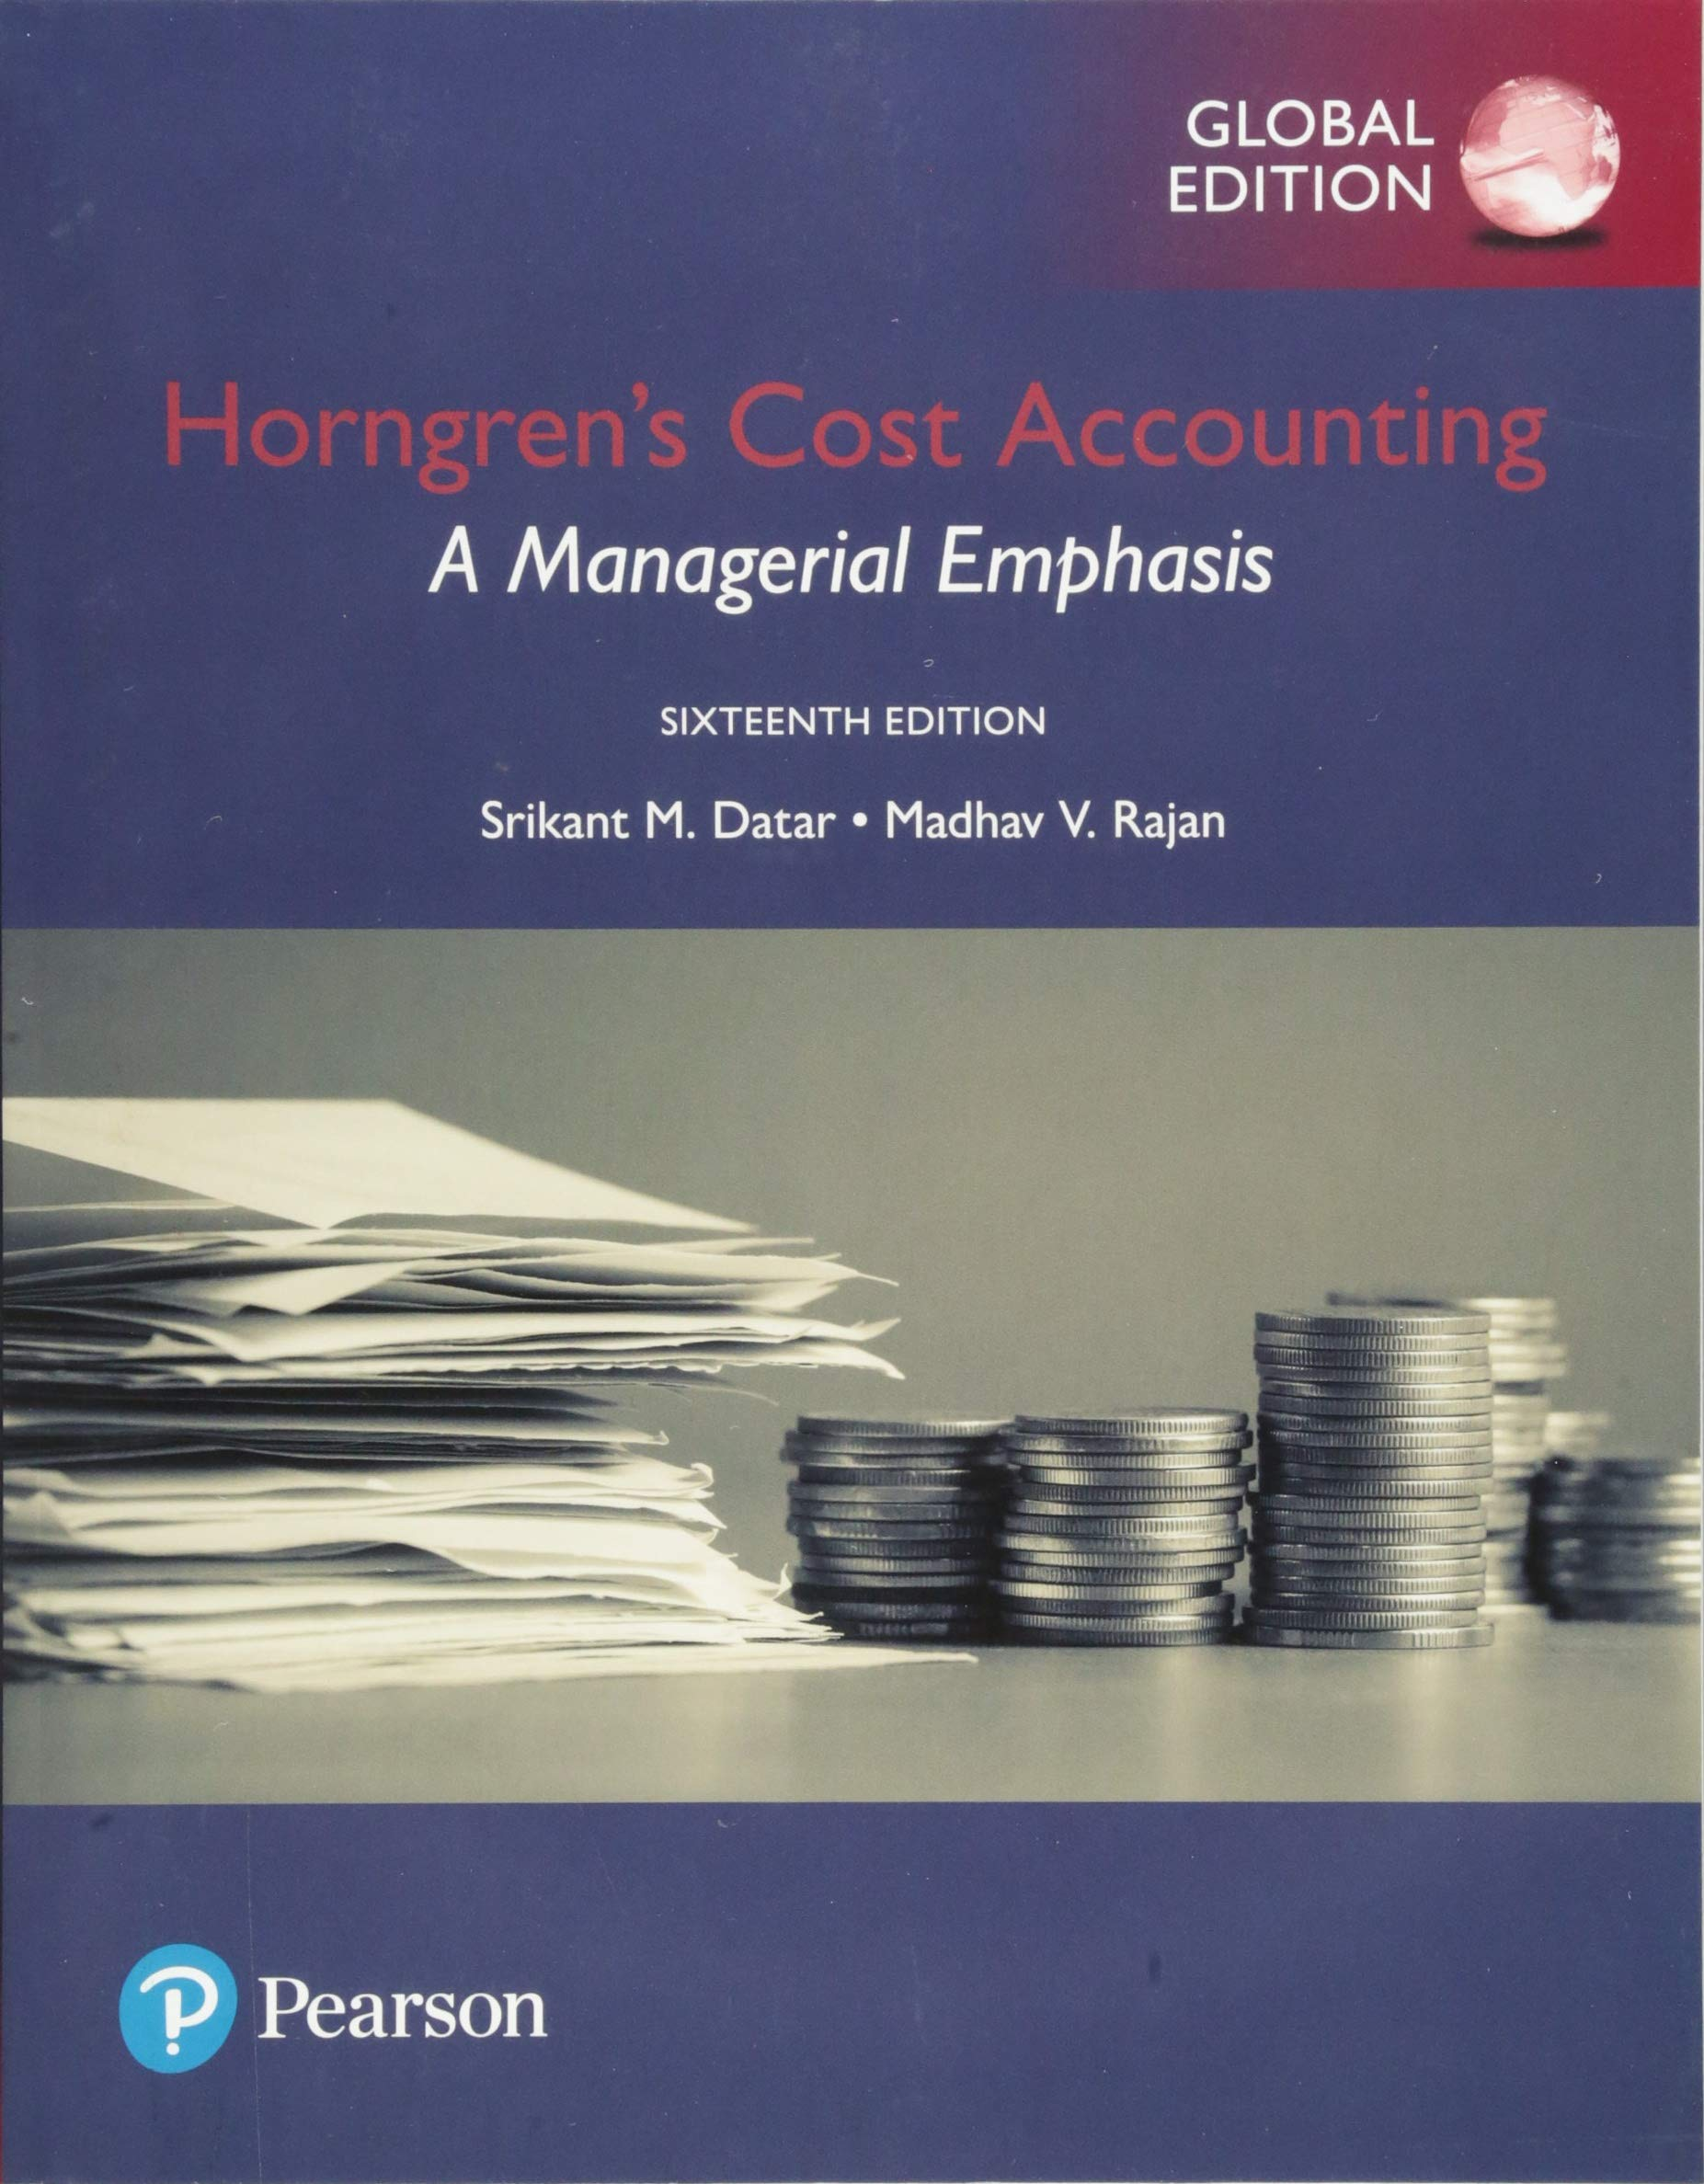 Horngren's Cost Accounting  A Managerial Emphasis Global Edition